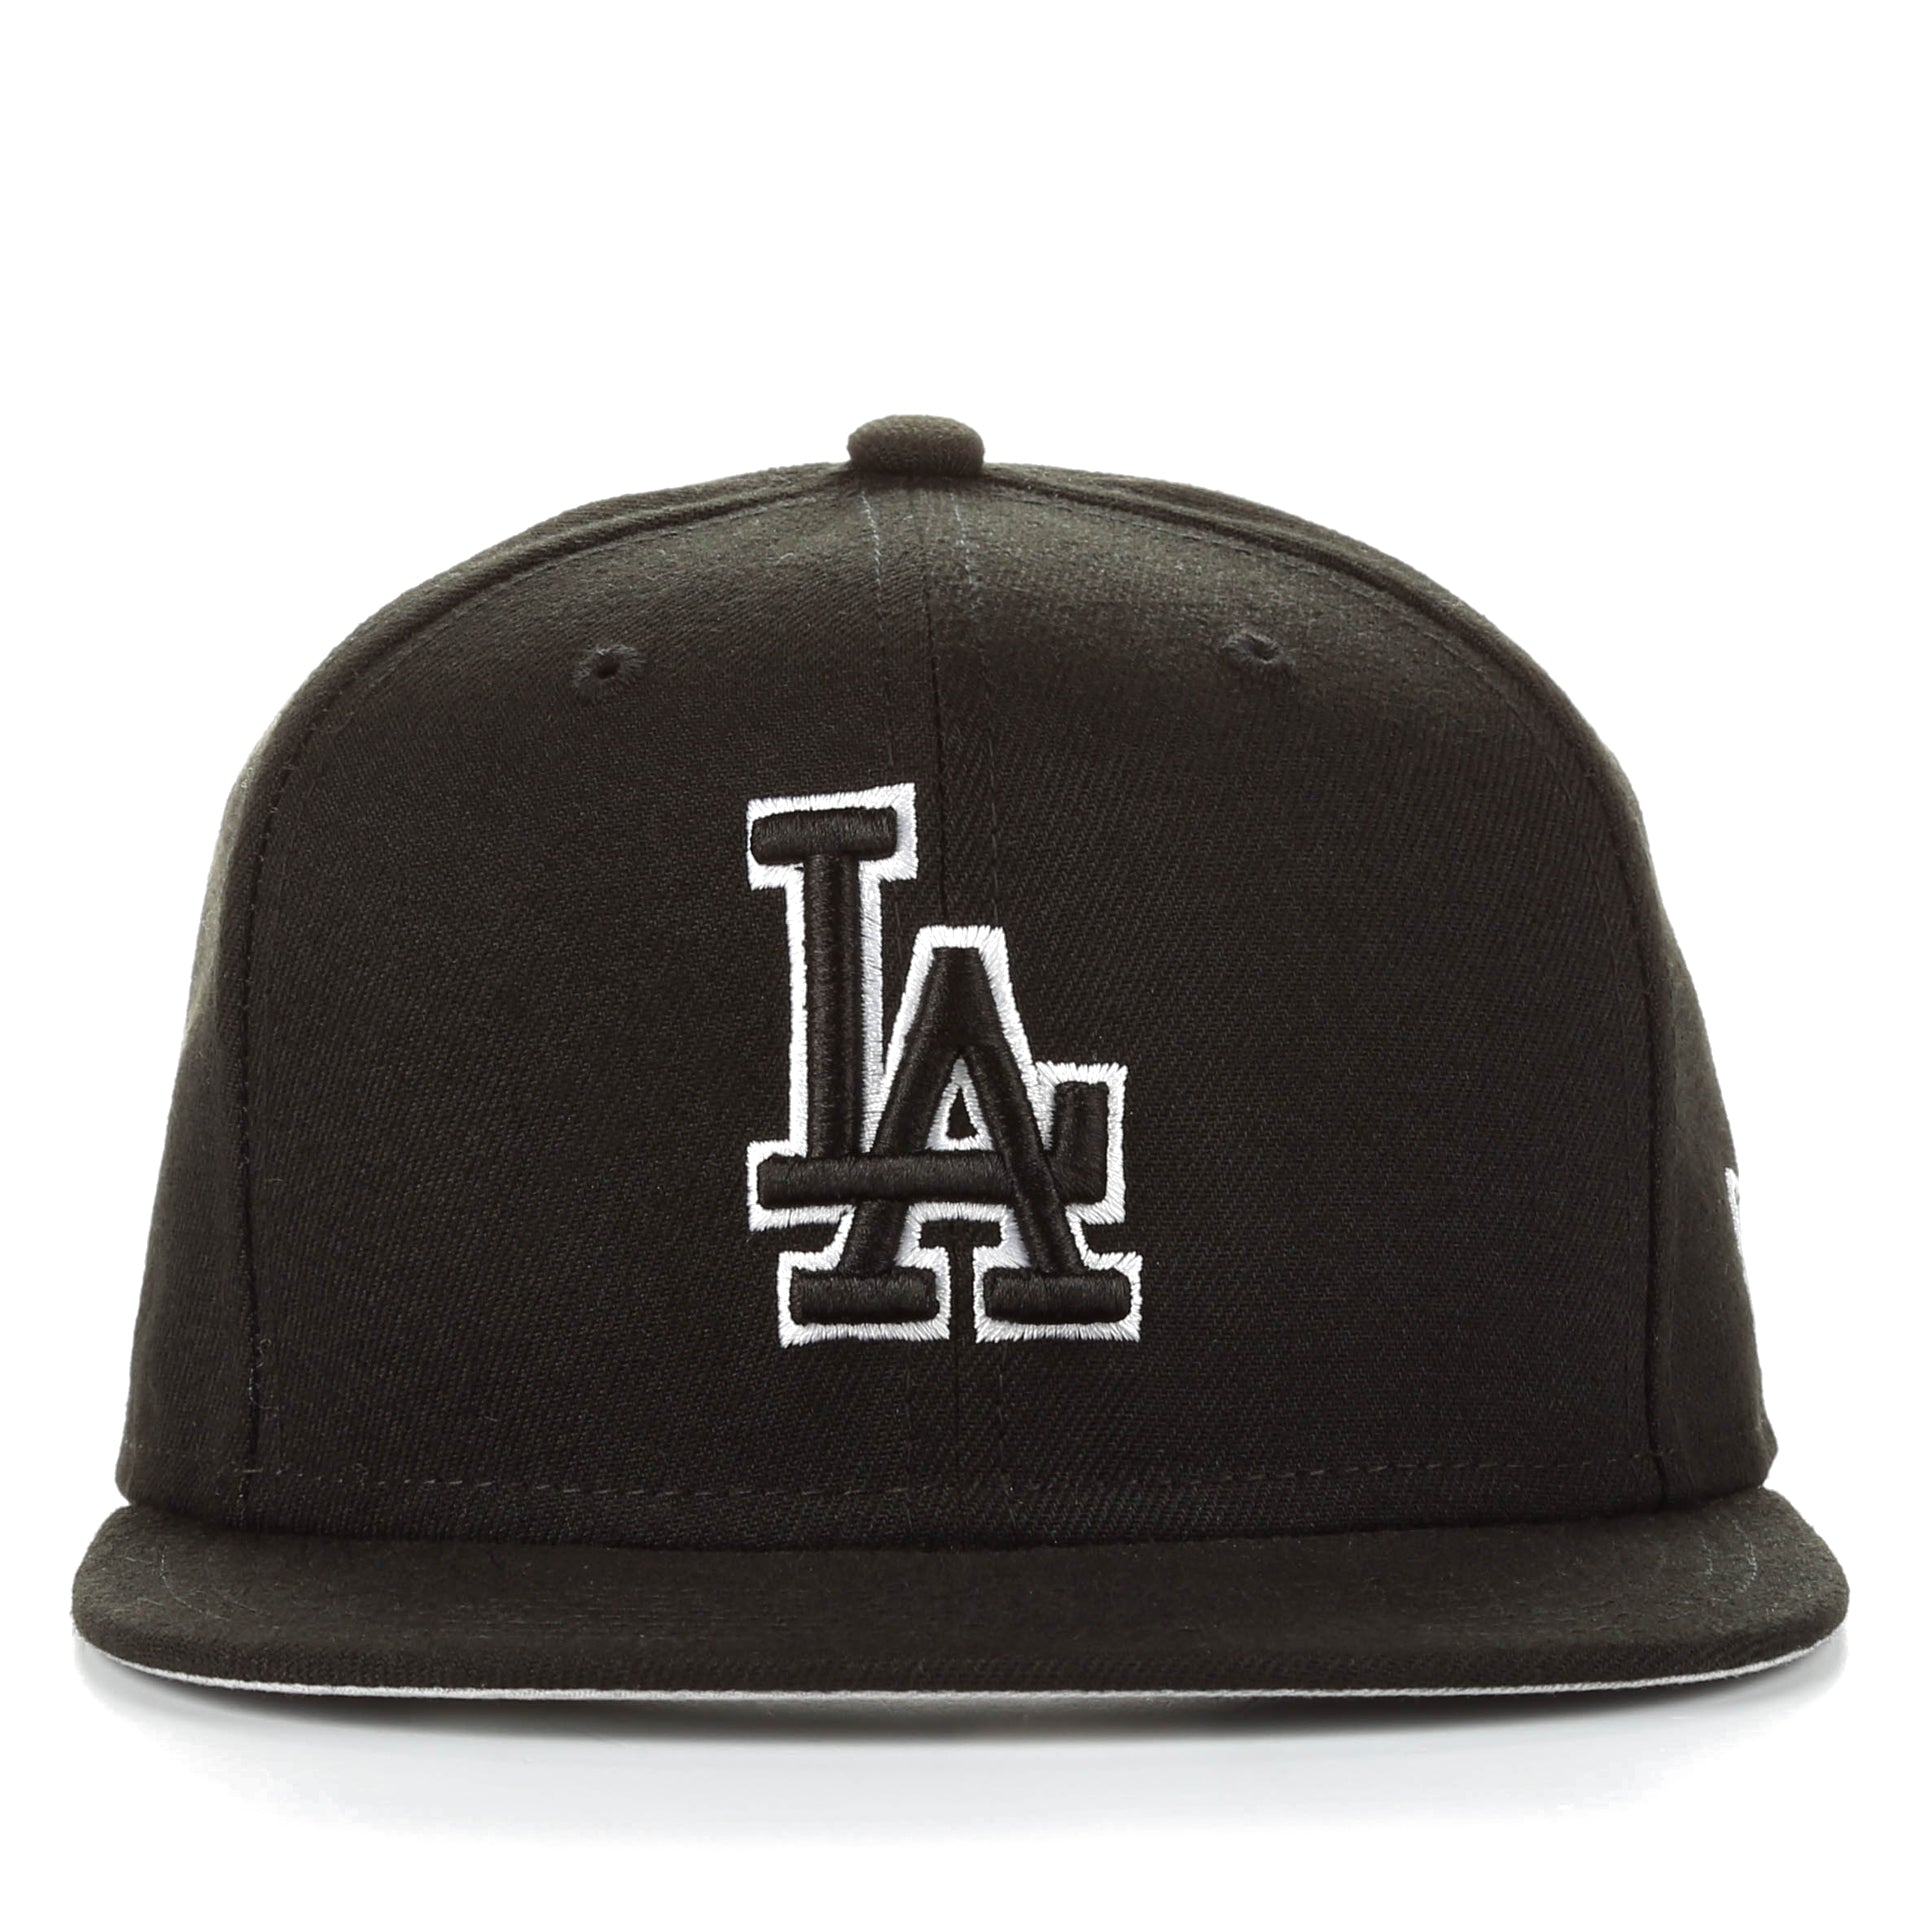 New Era 59Fifty League Basic Fitted Cap - Los Angeles Dodgers Black ... 23e78629c6e